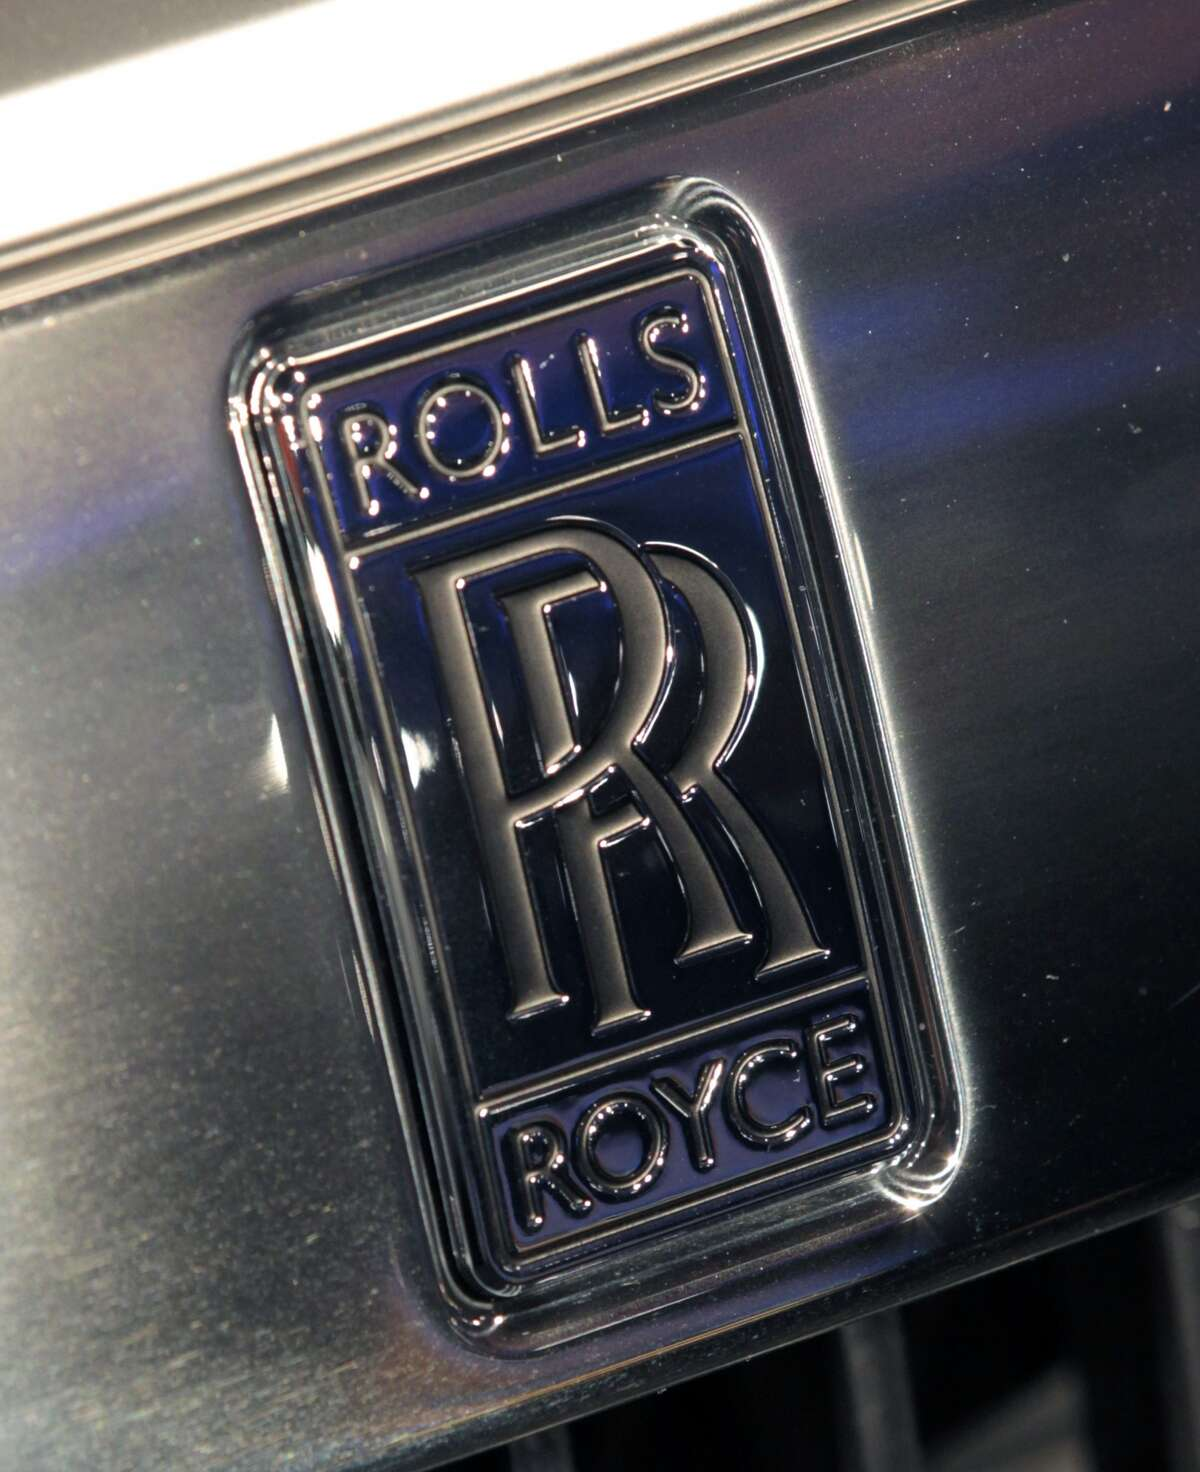 Rolls-Royce: The double-R logo began as an ode to founders Henry Royce and Charles Rolls, but it's had some tweaks along the way. It originally had a red and a black